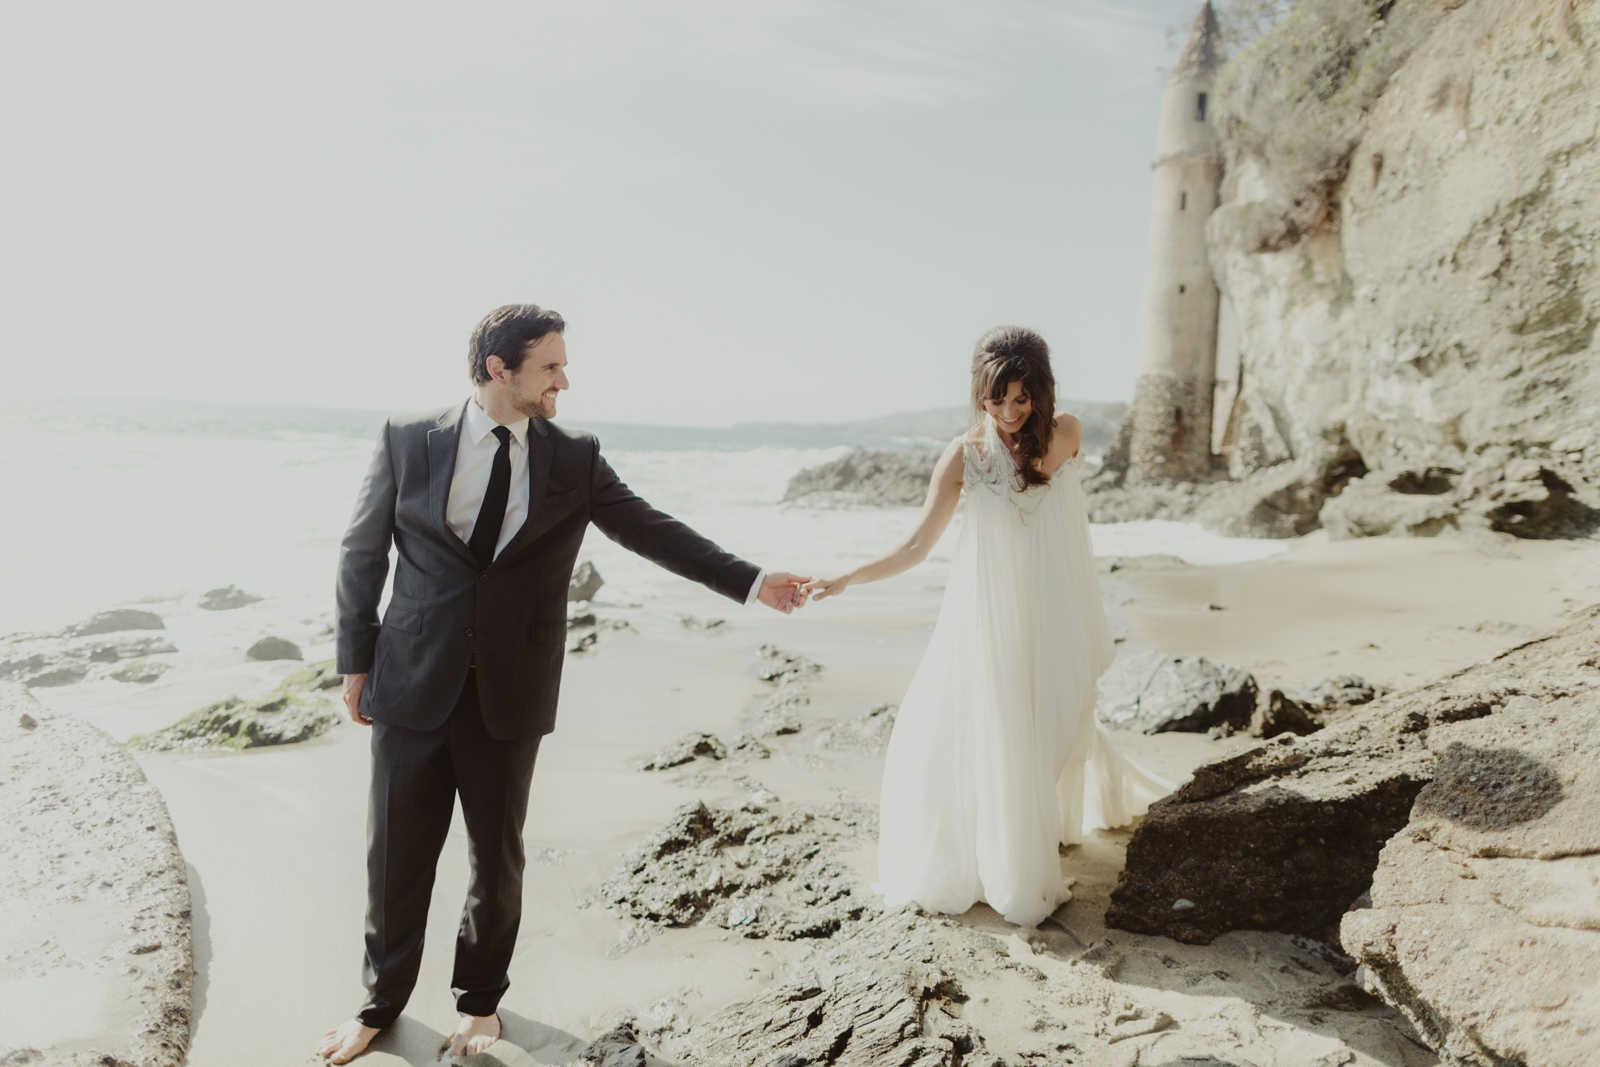 Kevin+Angie-Married-Blog-00018.jpg